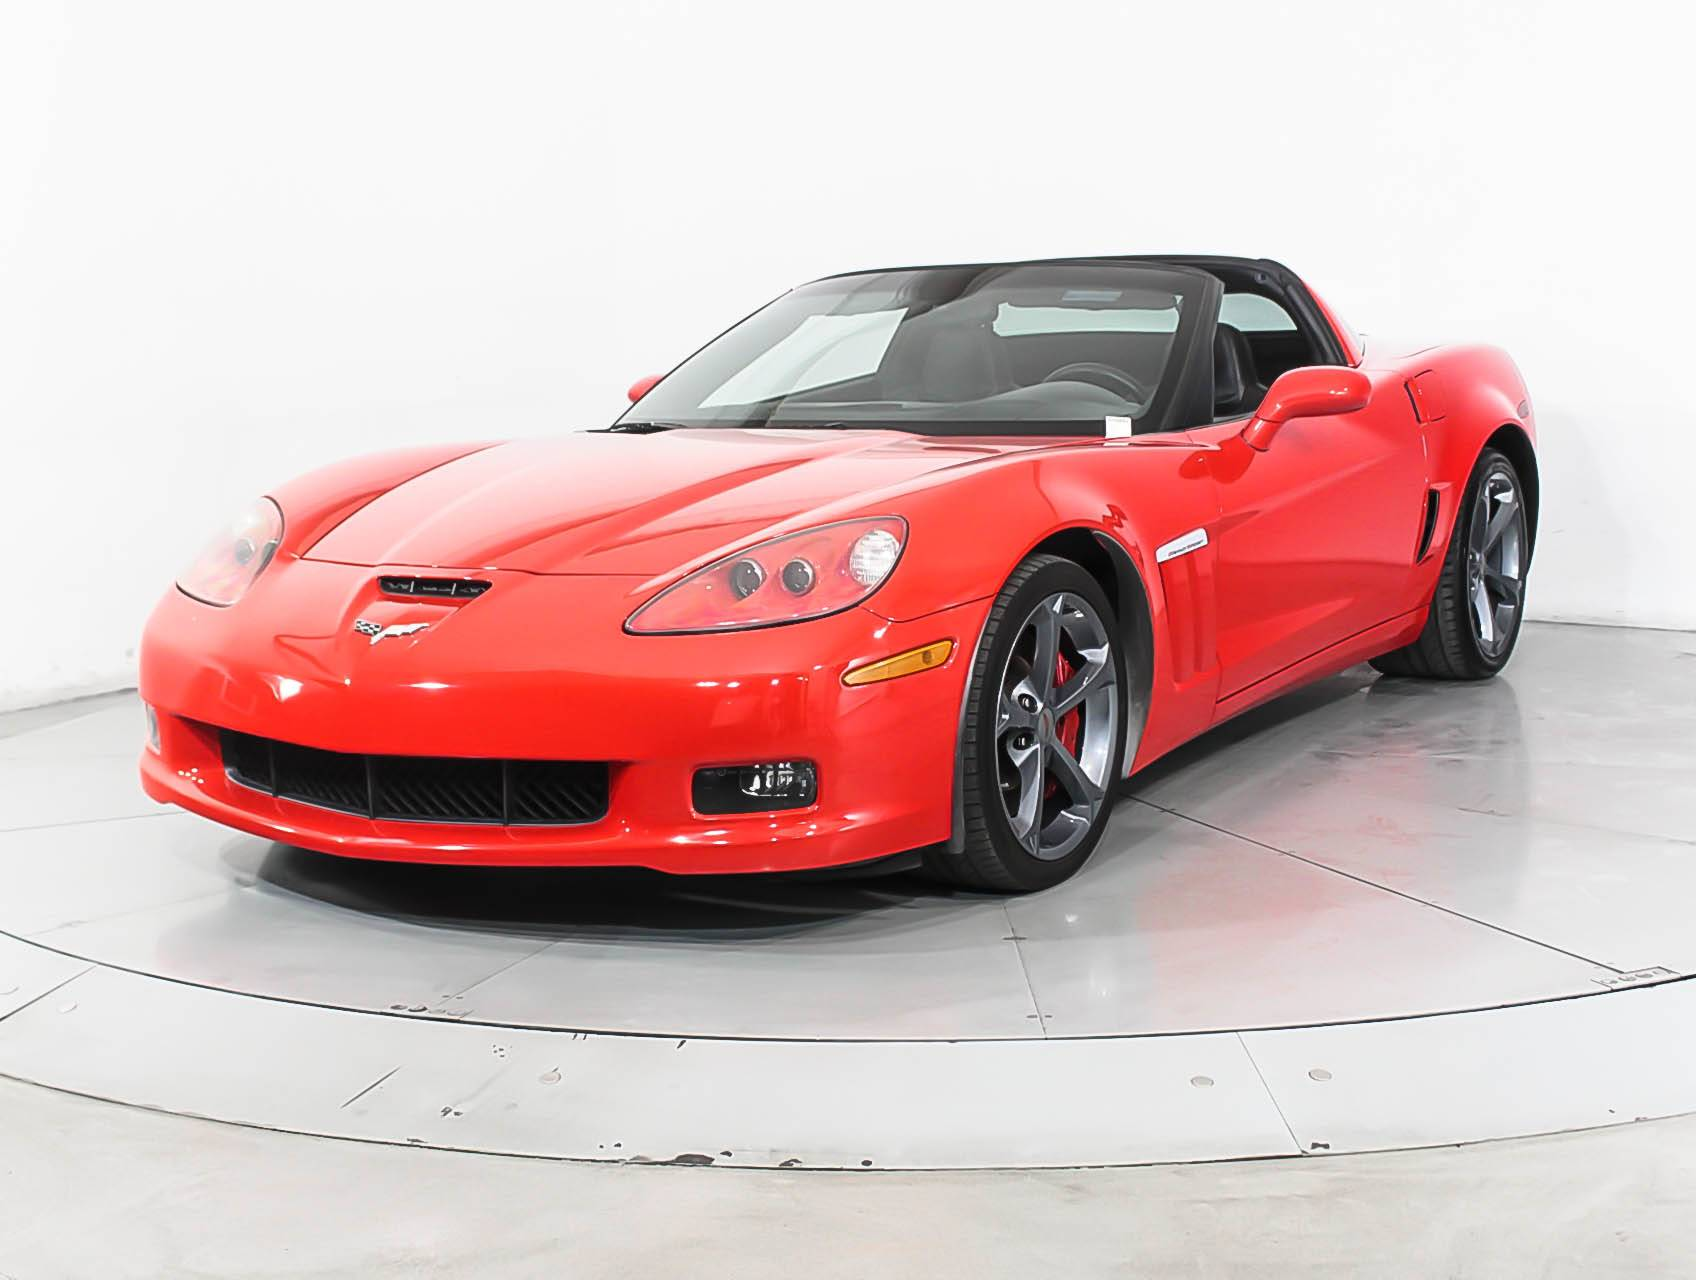 ykjEKXogrej - 2012 Chevrolet Corvette Grand Sport Convertible 1lt At